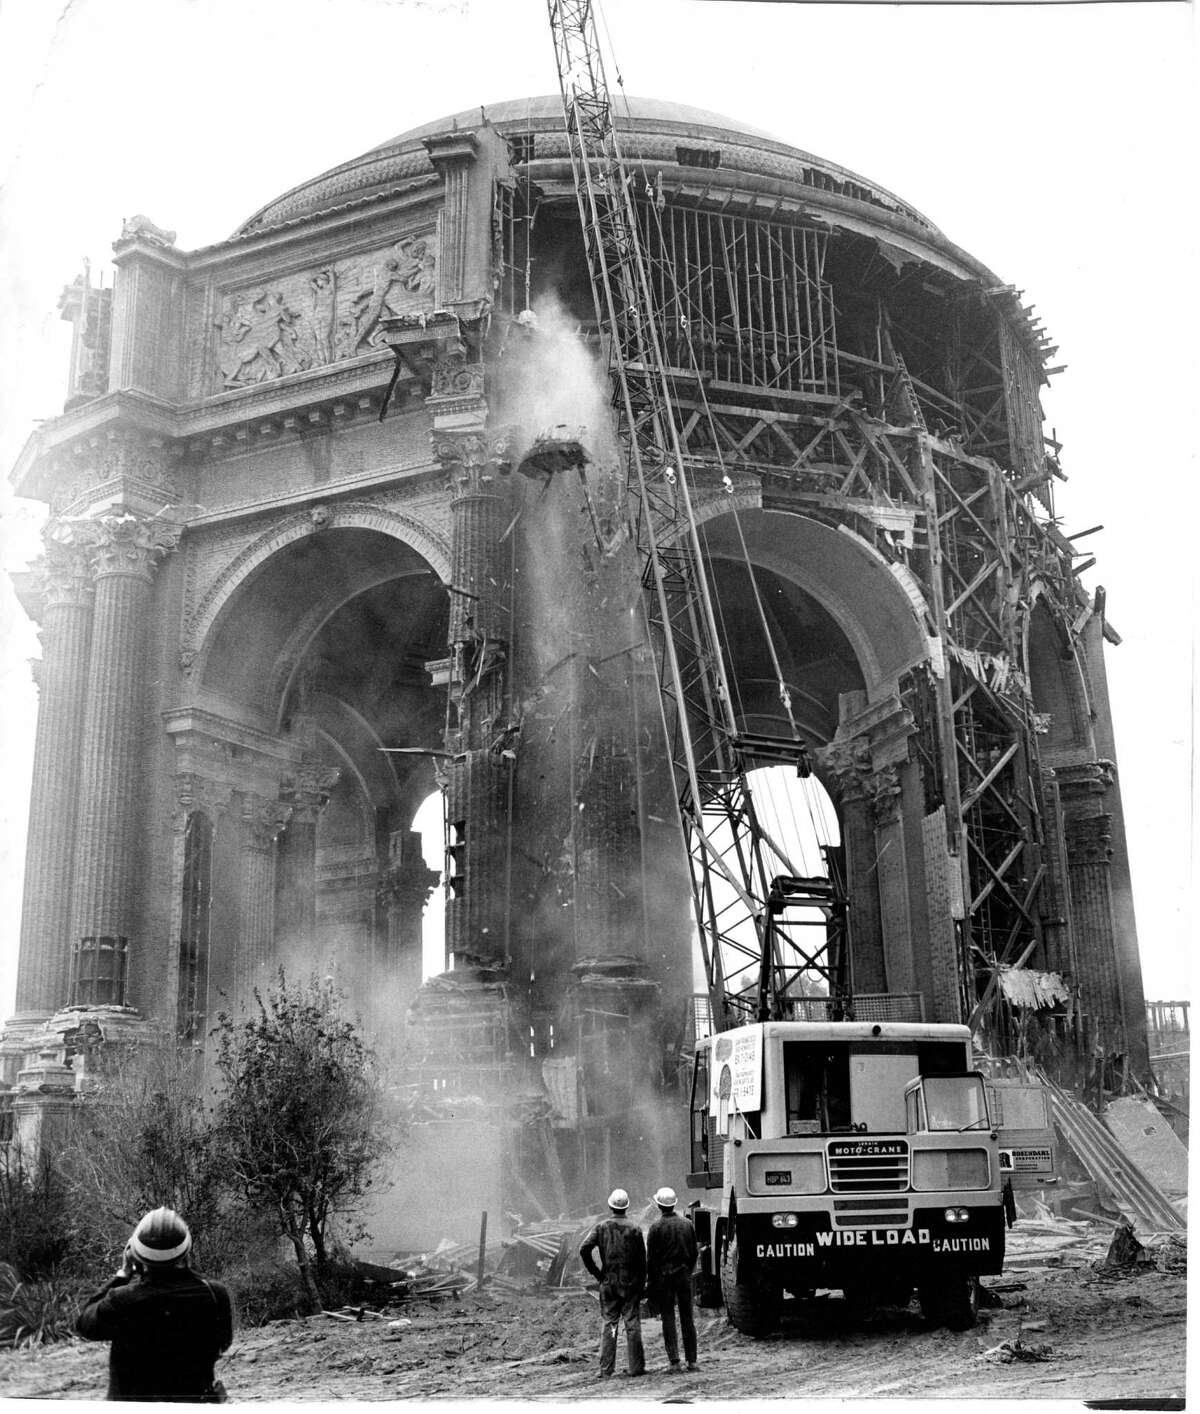 Saving the Palace of Fine Arts meant partially demolishing it and then reconstructing it with higher-quality materials. Photo shot Oct. 15, 1964.